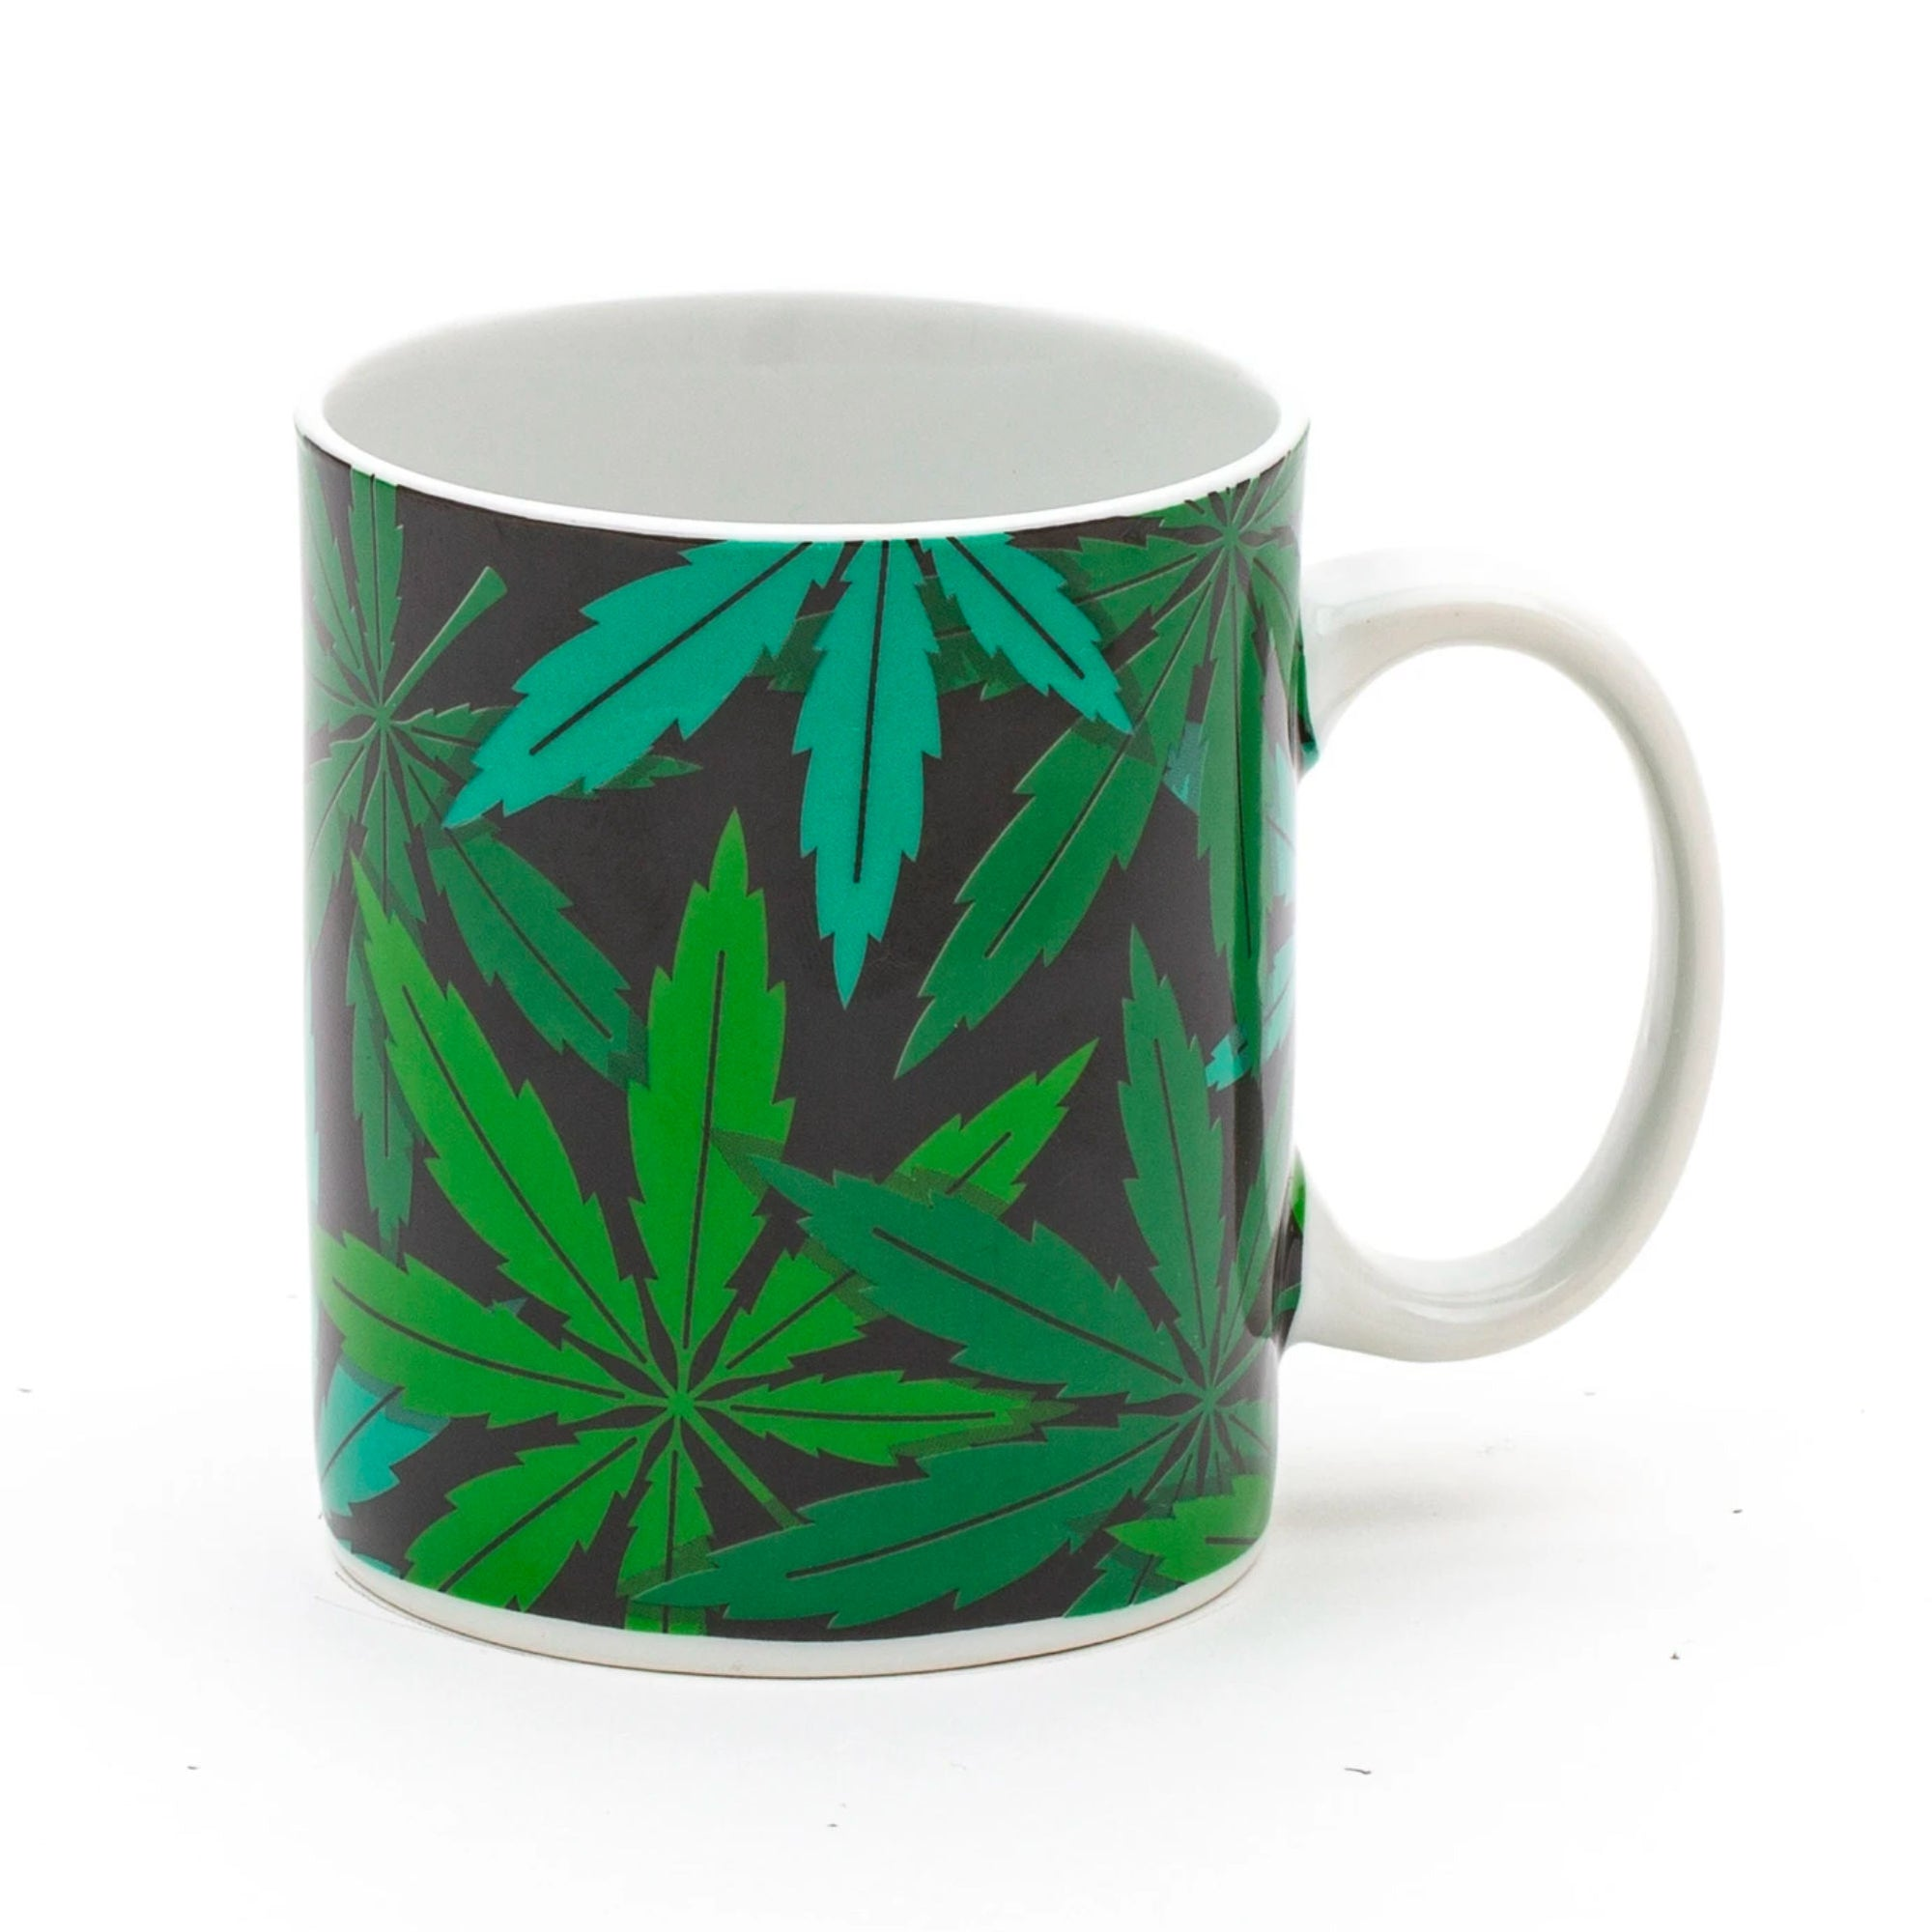 Seletti Blow by Studio Job Mug, weed